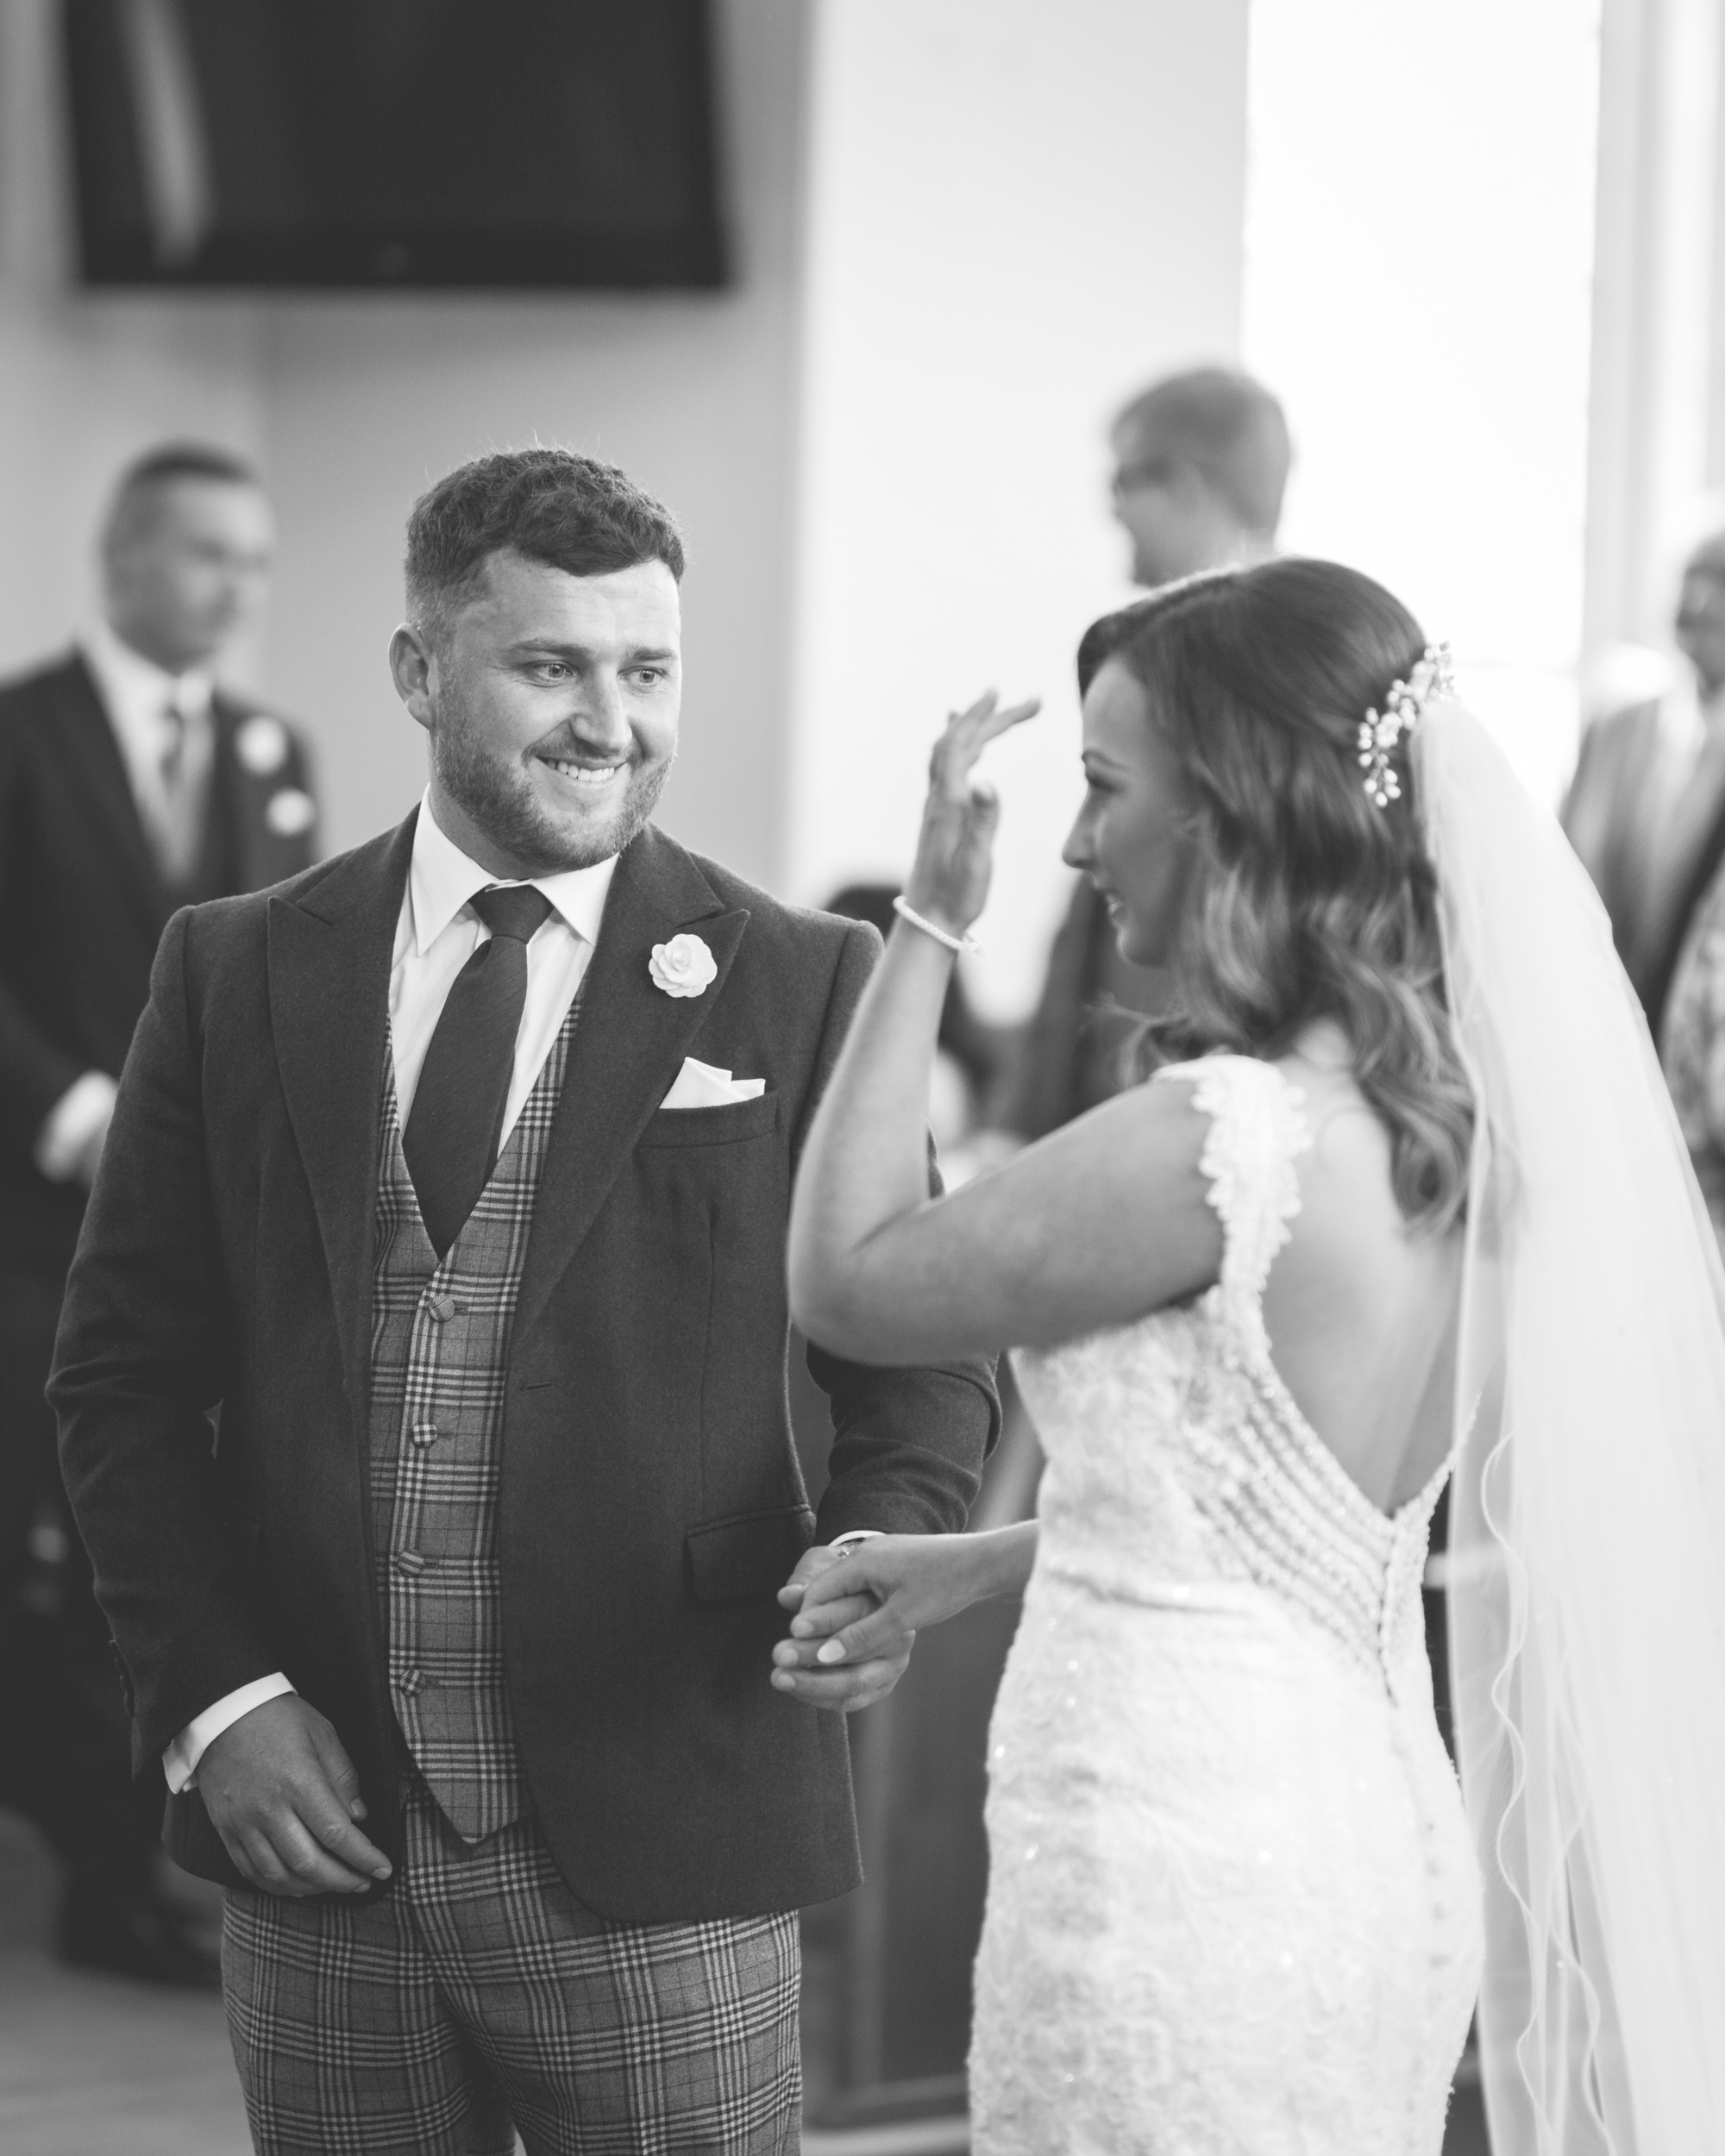 Brian McEwan | Northern Ireland Wedding Photographer | Rebecca & Michael | Ceremony-33.jpg